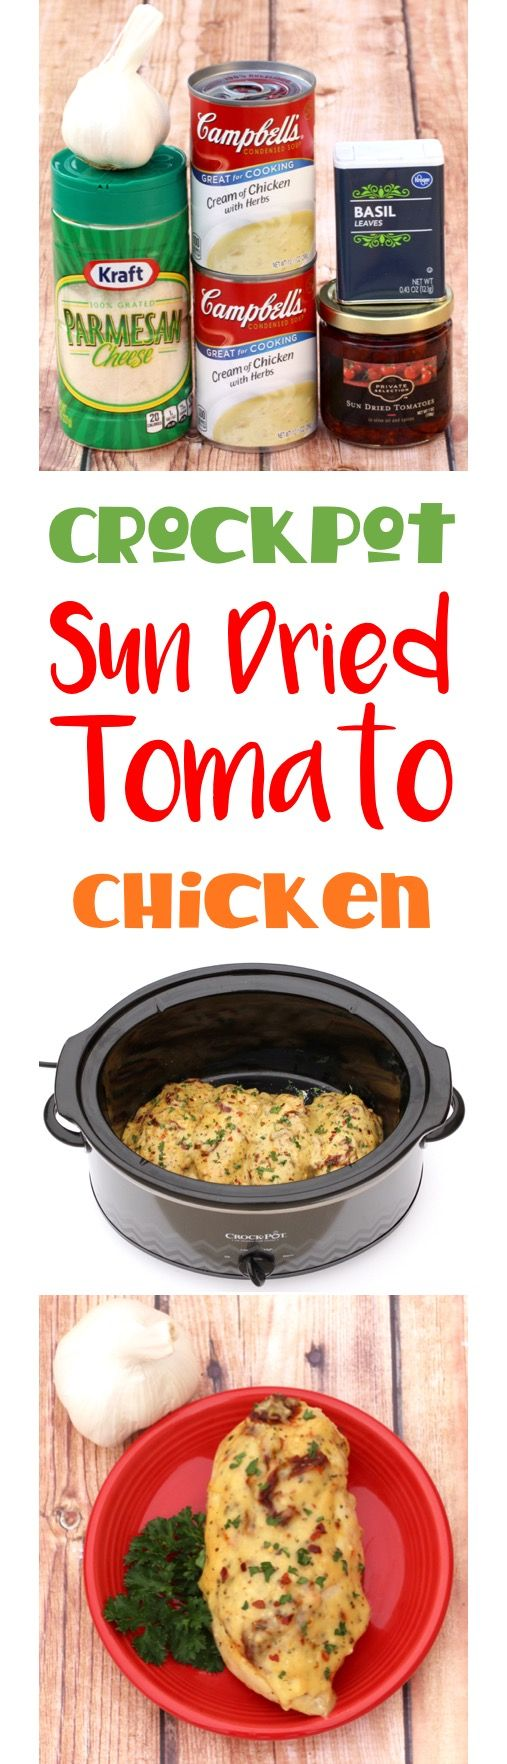 Crockpot Chicken Recipes! This Sun Dried Tomato Chicken is so EASY to make and will become a family favorite! Simple, delicious, and the perfect Slow Cooker meal for busy weeknights! | TheFrugalGirls.com